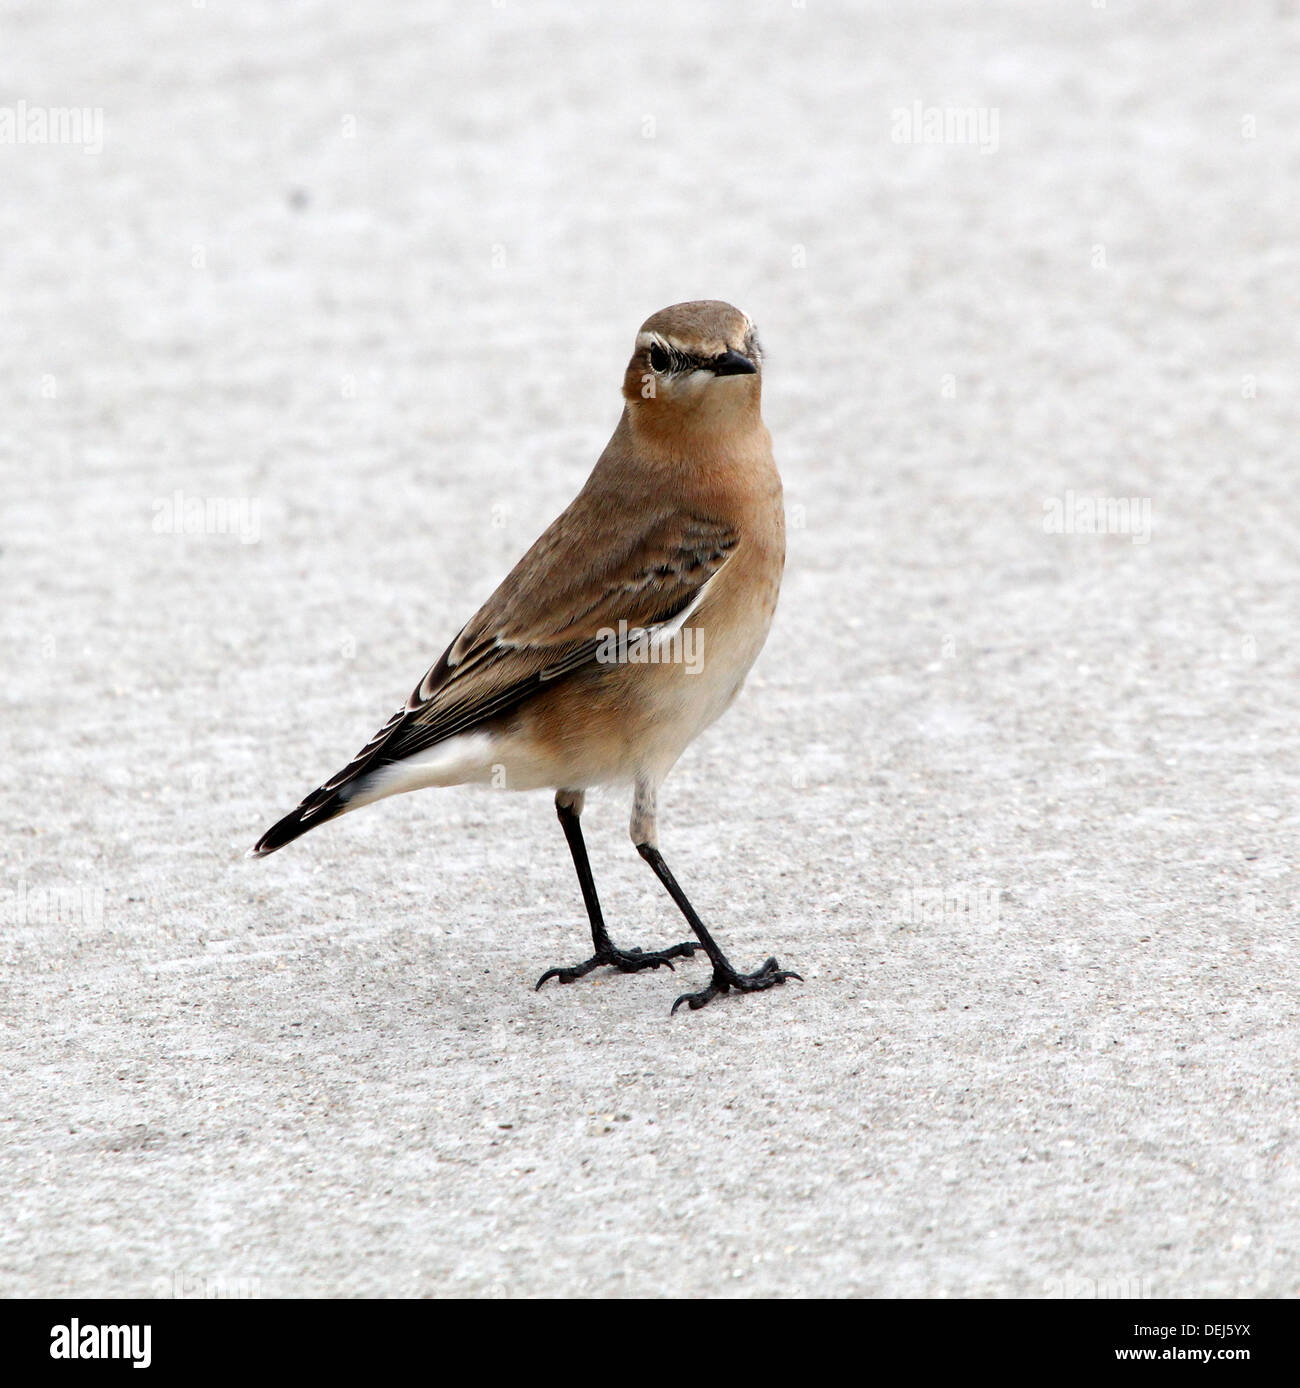 Female Northern Wheatear (Oenanthe Oenanthe) posing on the pavement Stock Photo